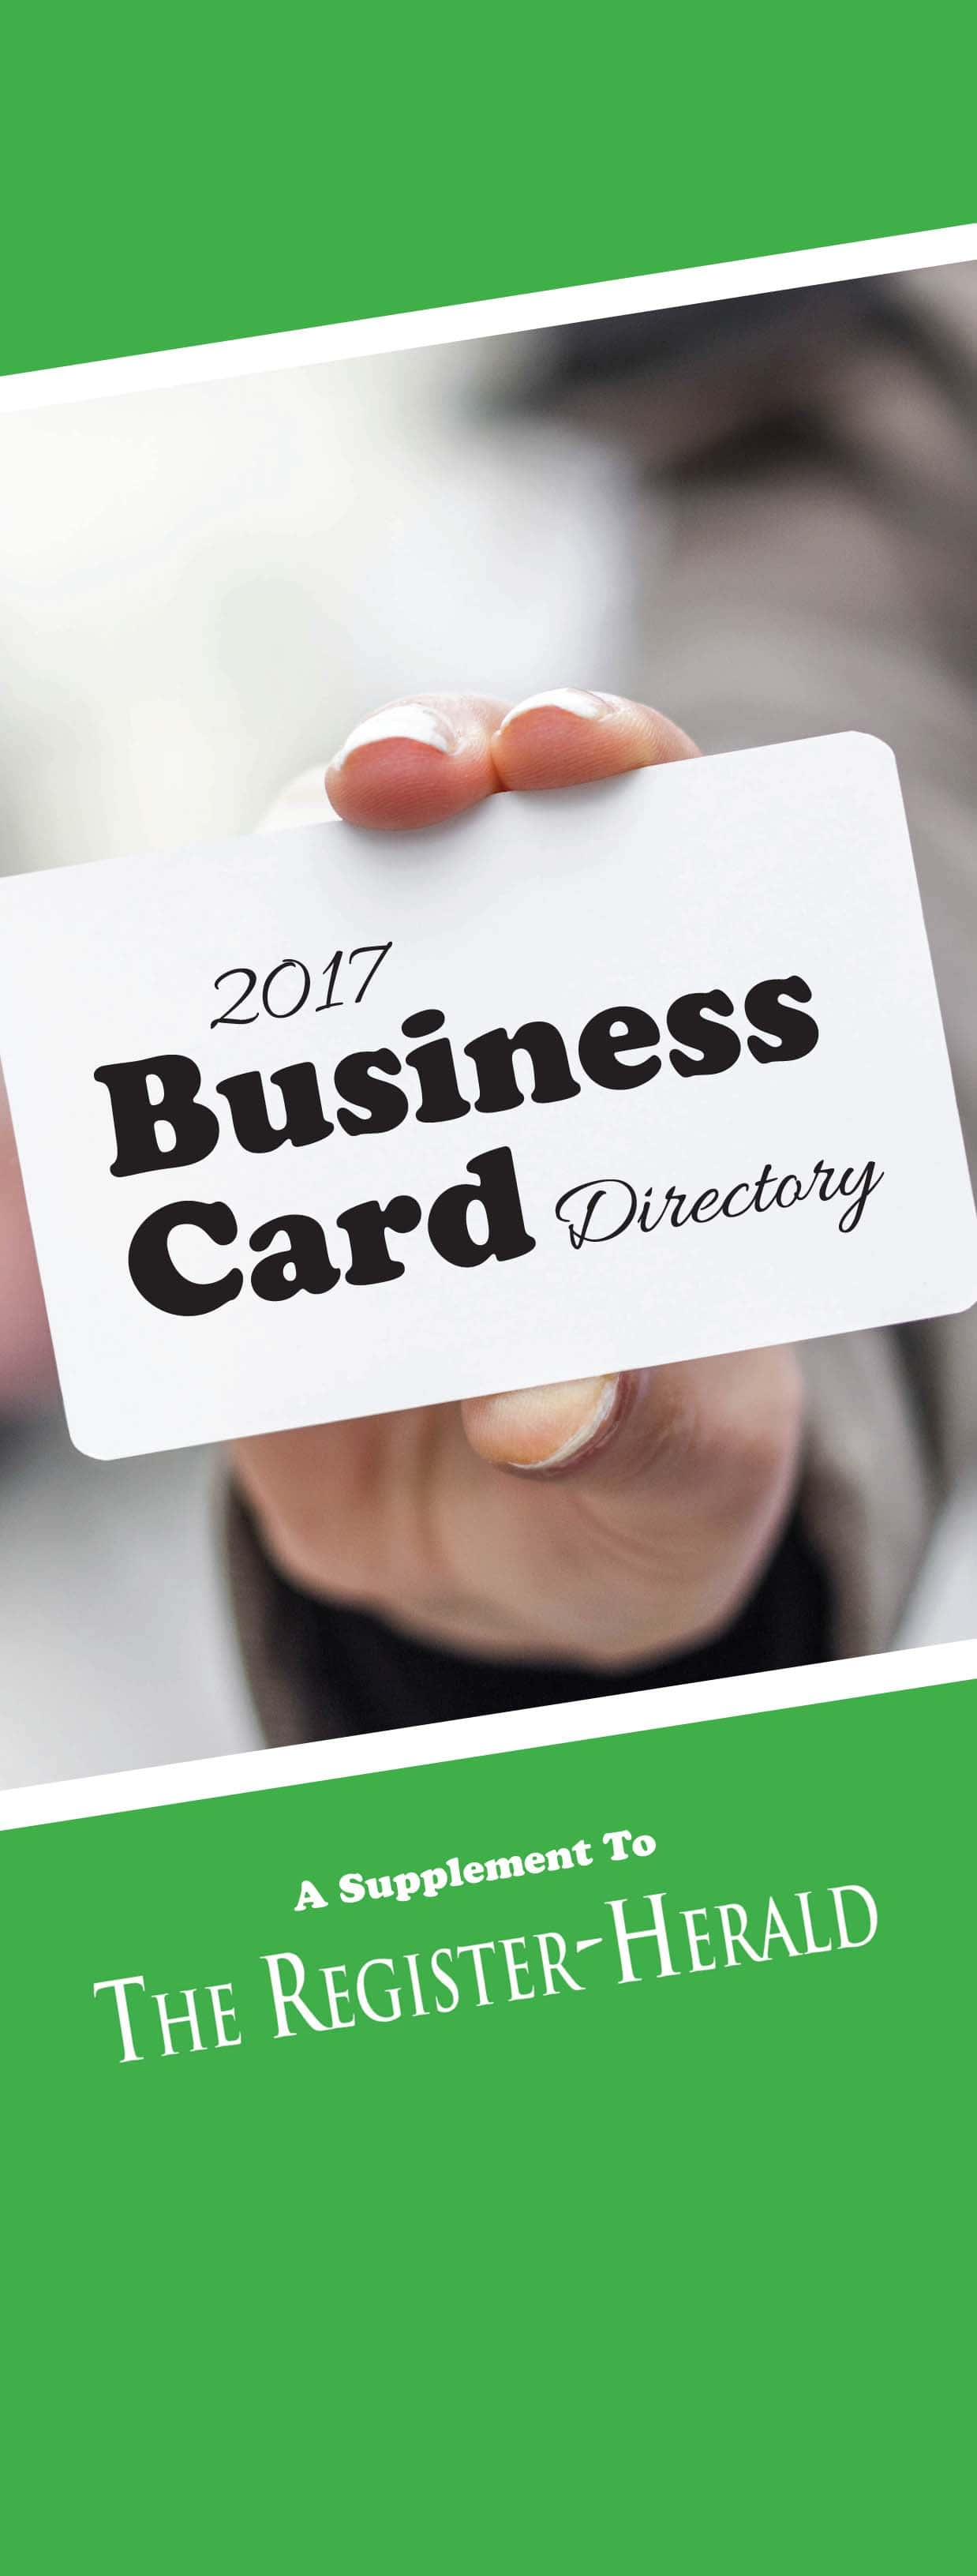 Business card directory 2017 register herald business card directory 2017 reheart Images